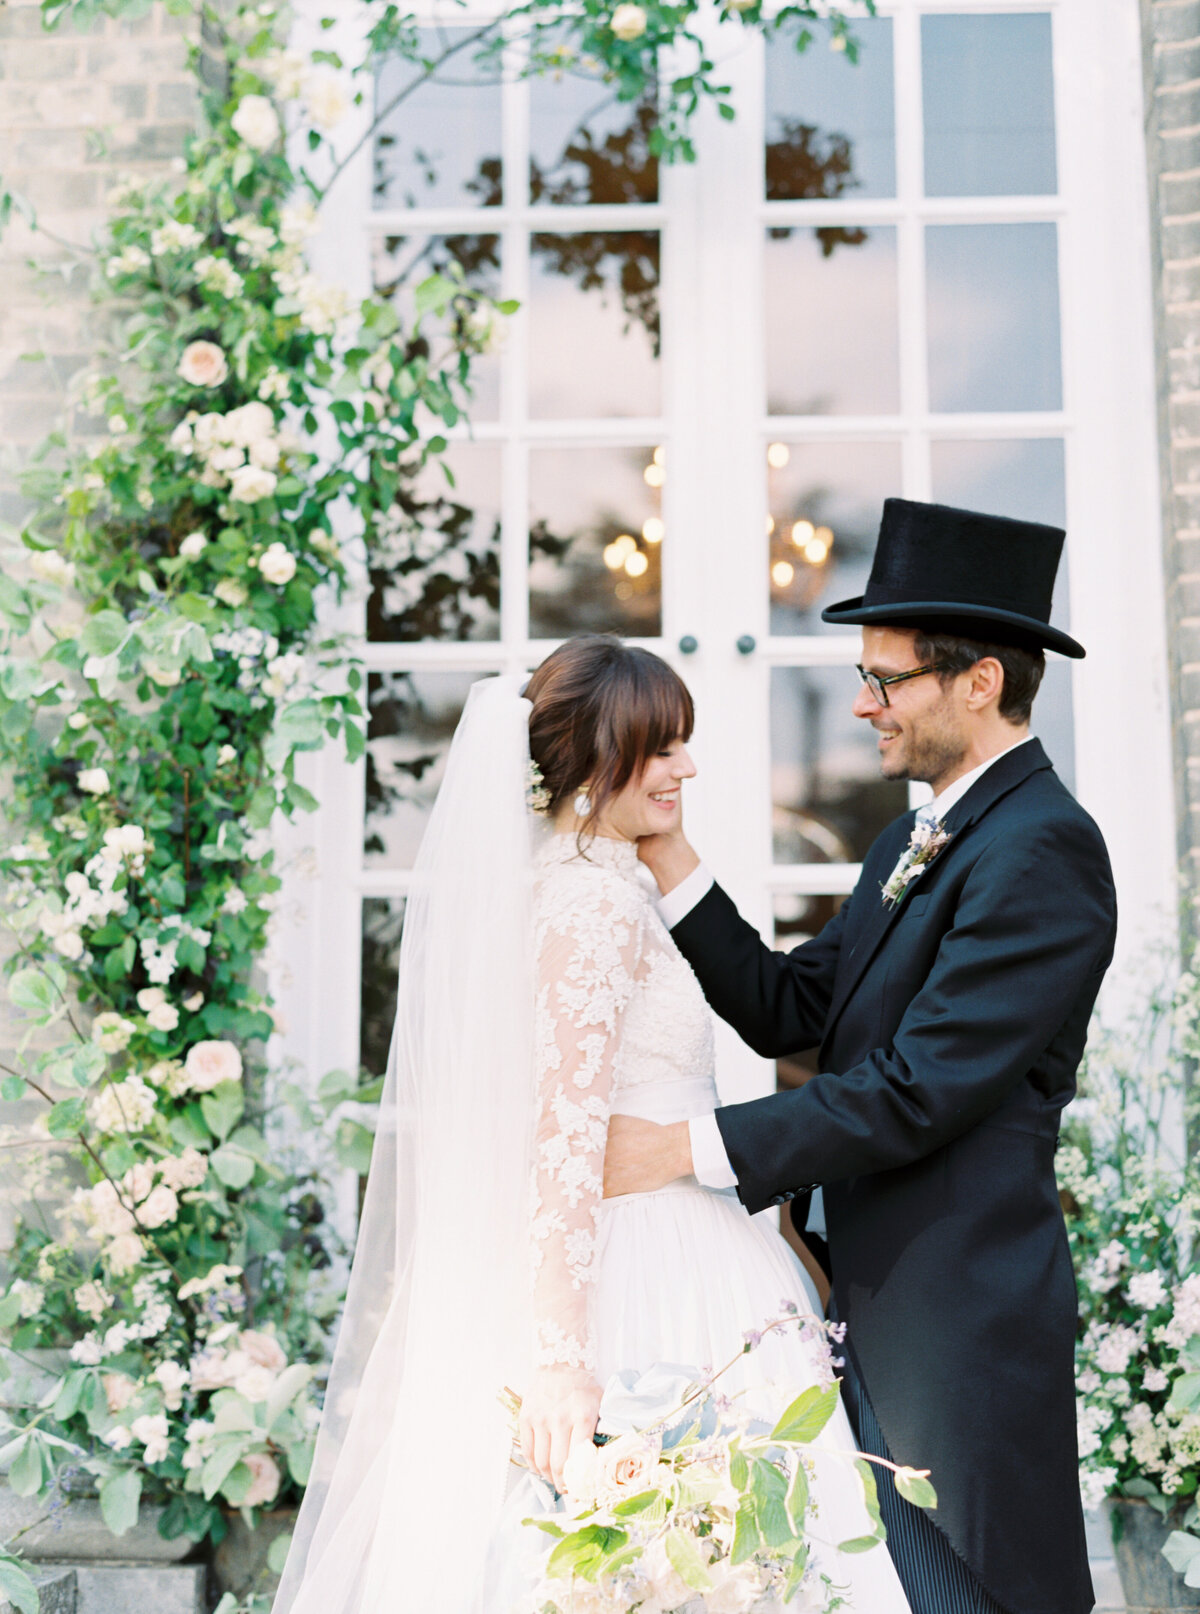 TiffaneyChildsPhotography-LondonWeddingPhotographer-Julieta+Cedrick-HedsorHouseWedding-227